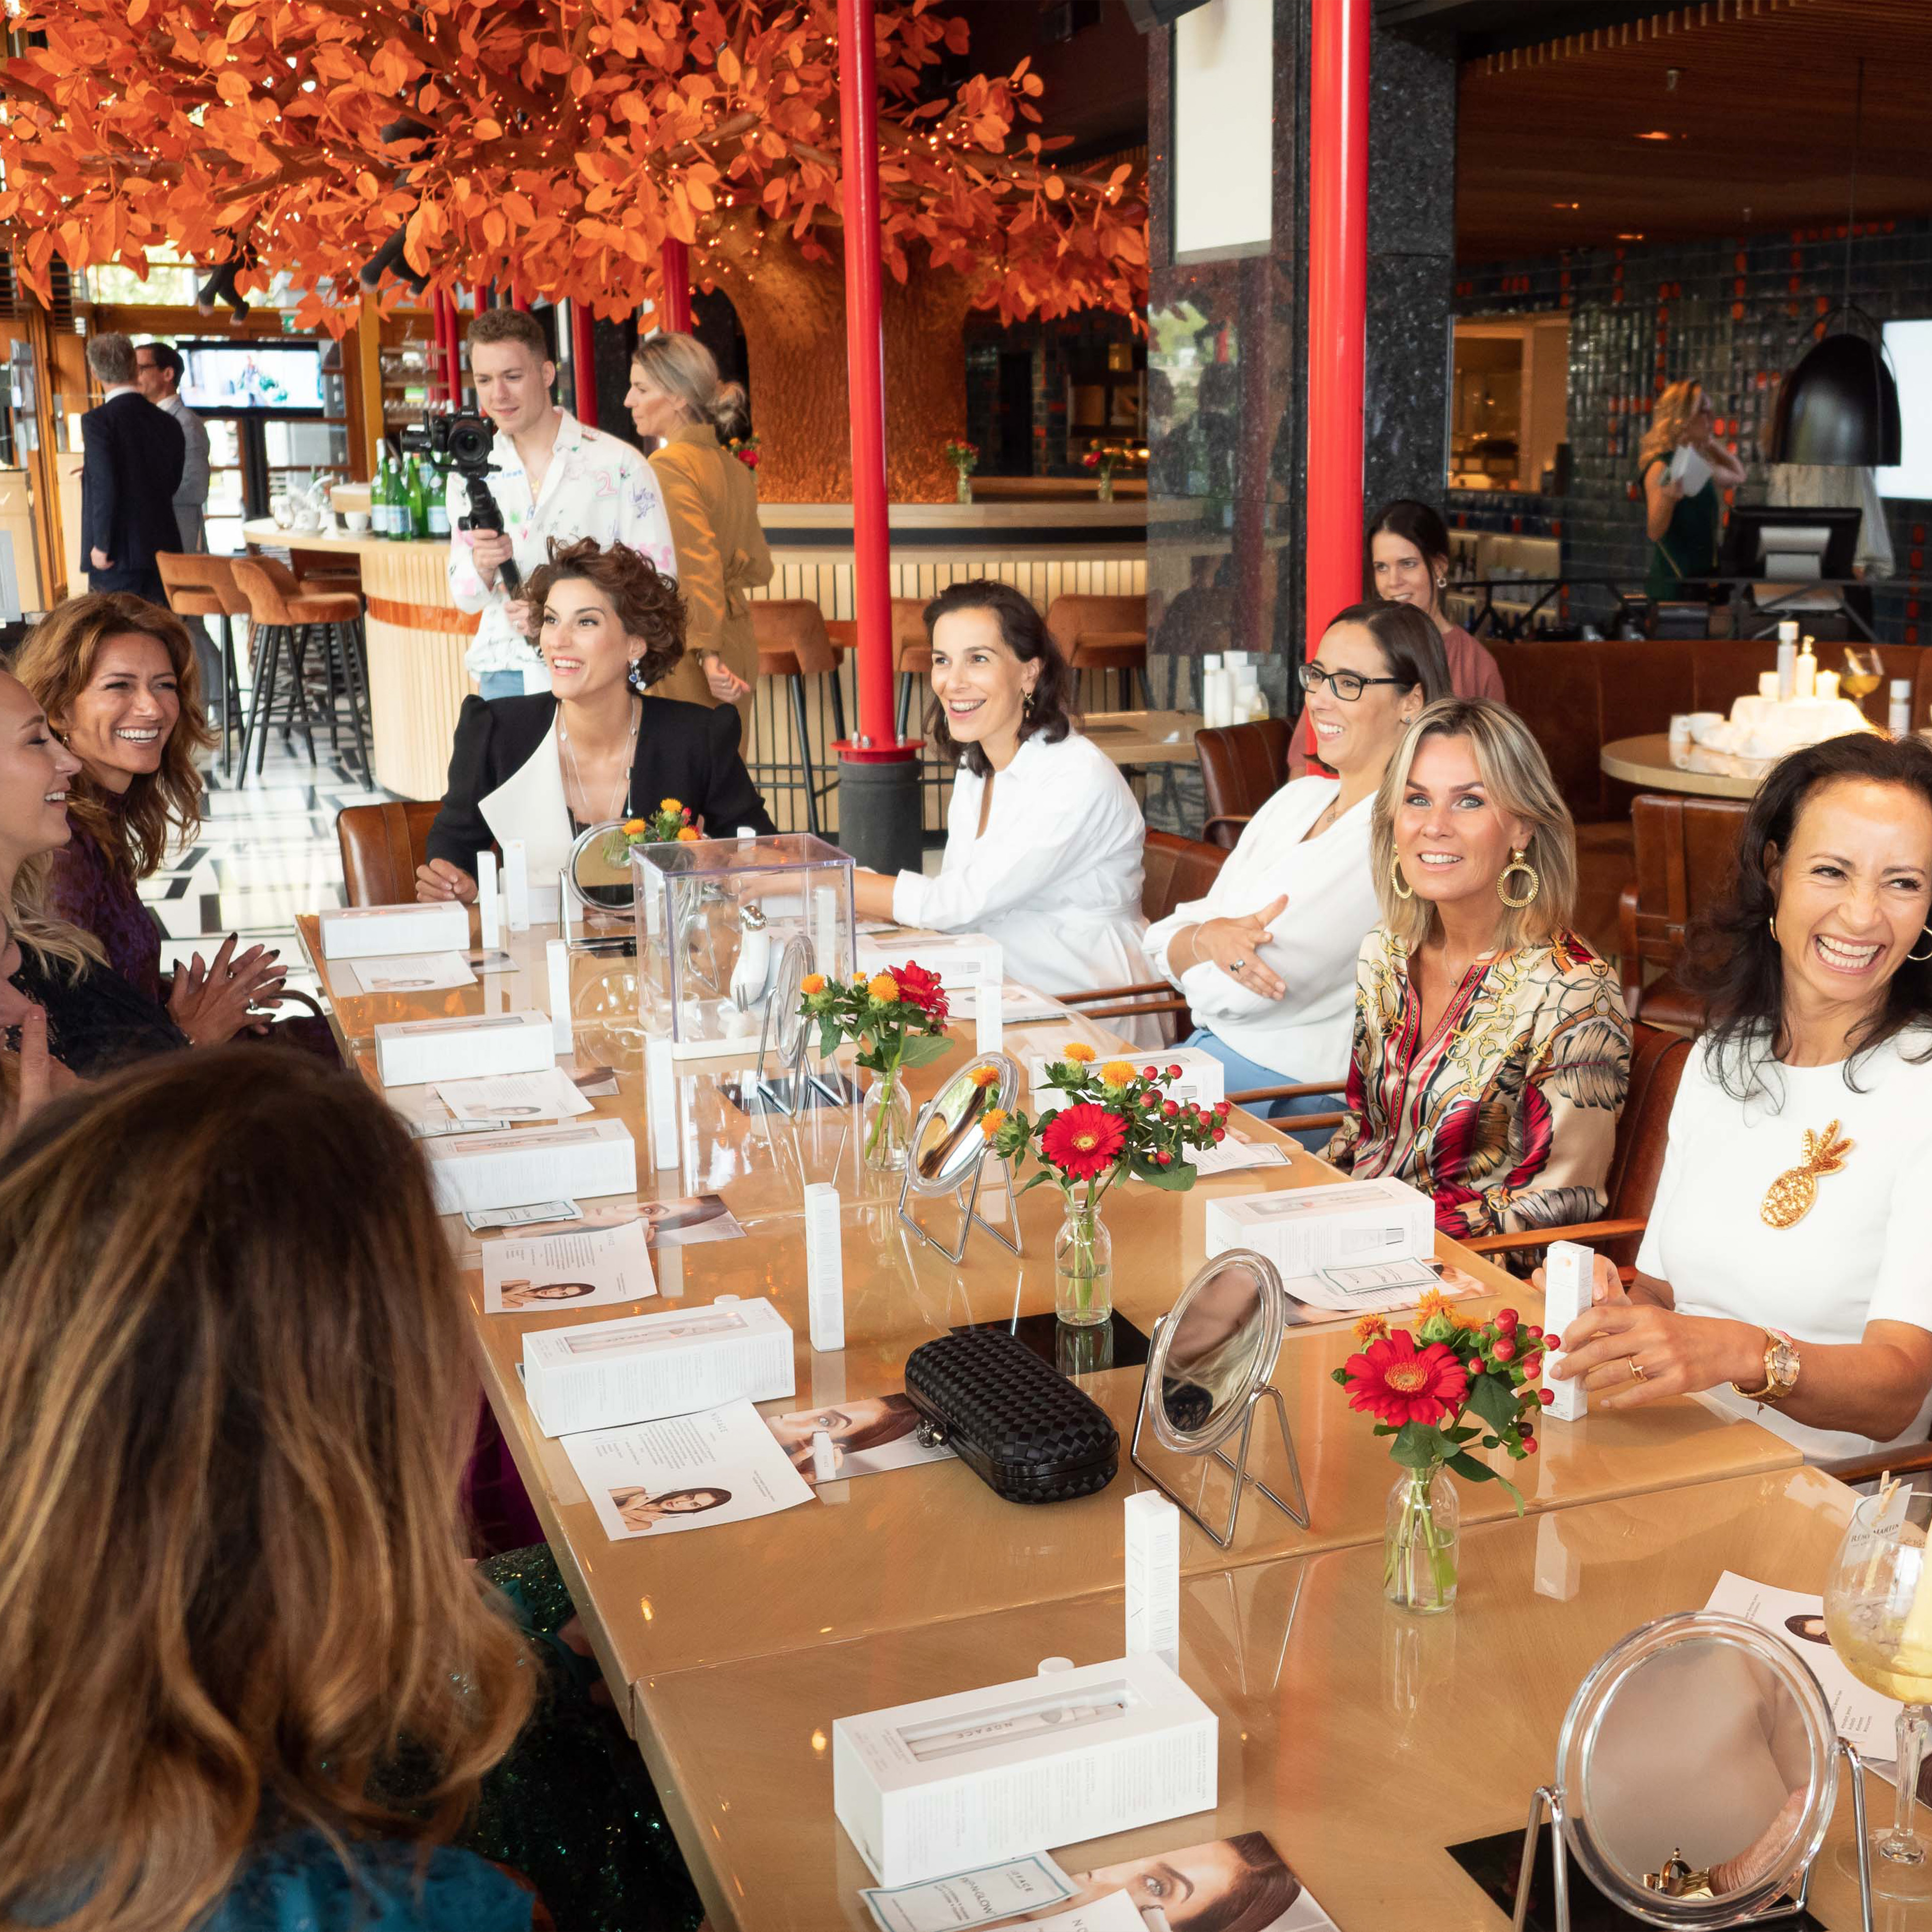 NuFACE partner @ Talkies lunch 2019 at SUSHISAMBA Amsterdam